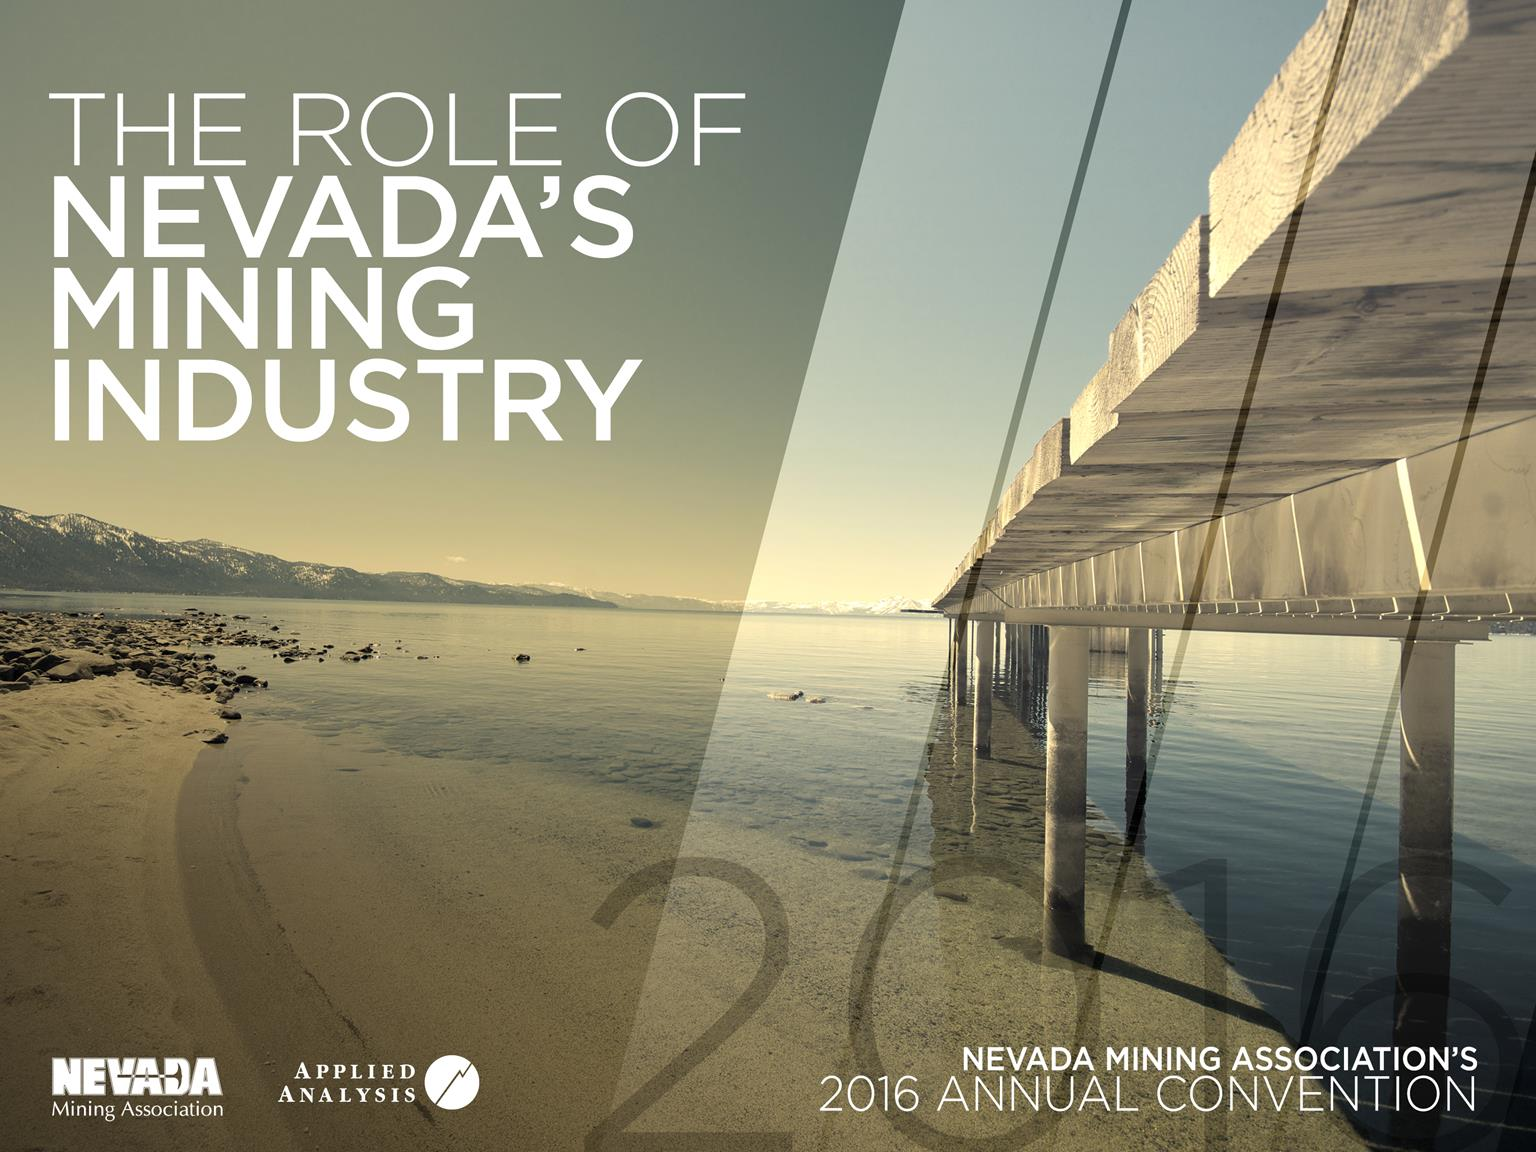 Nevada Mining Association Nevada Economy 2016: The Role of Nevada's Mining Industry